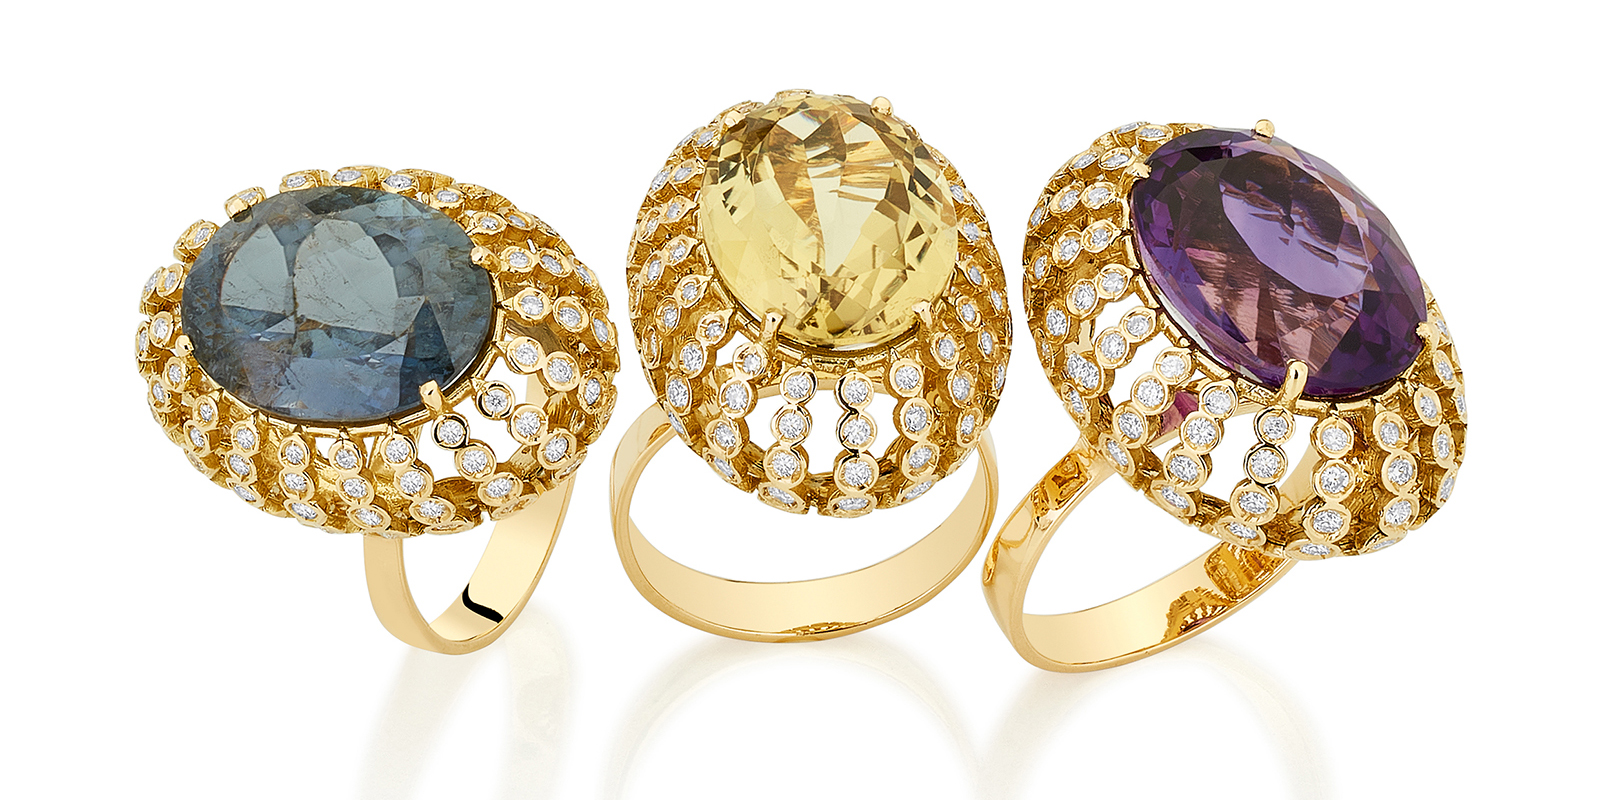 Carol Kauffmann 'Petit Pois' rings, with grey tourmaline, yellow beryl and amethyst respectively, all in diamonds and 18k yellow gold